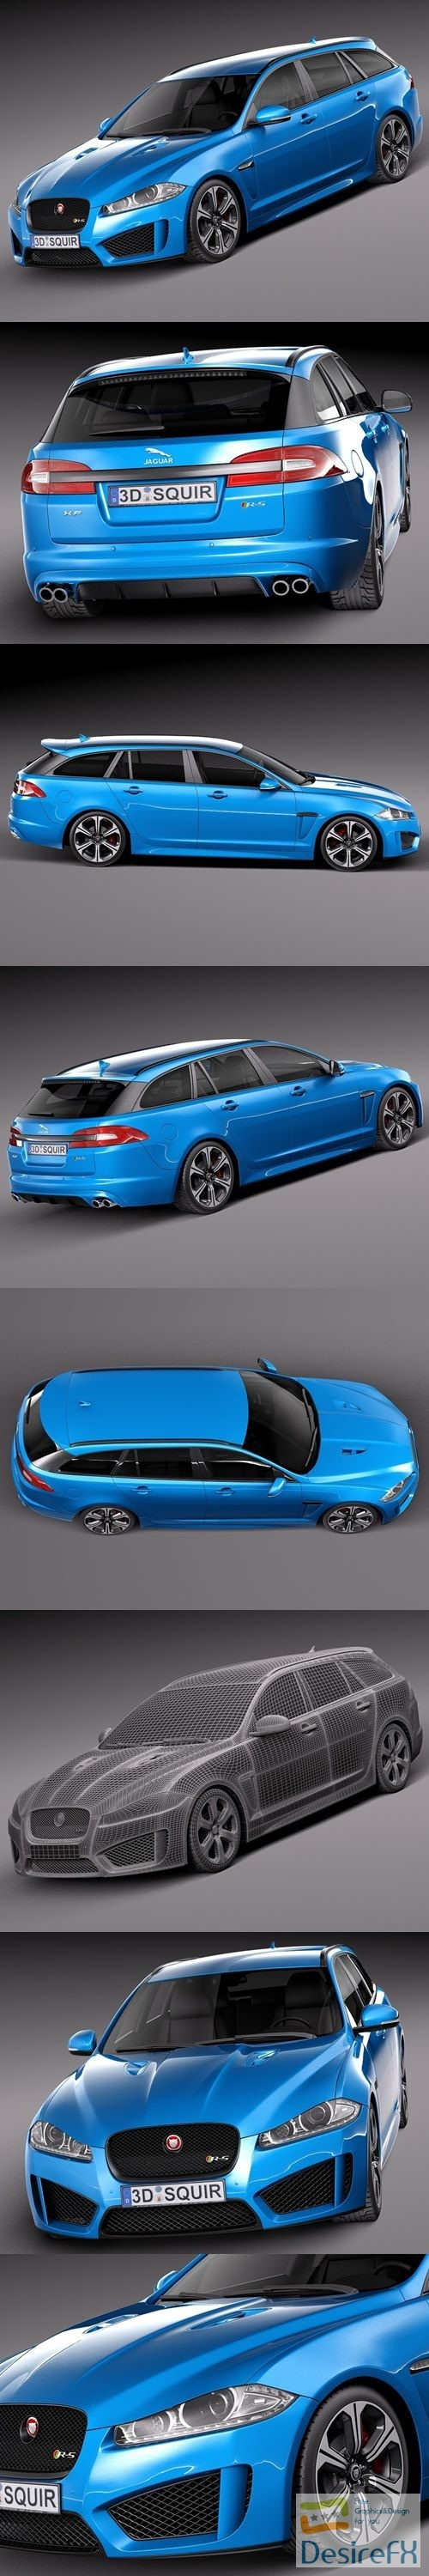 3d-models - Jaguar XFR-S Sportbrake 2015 3D Model